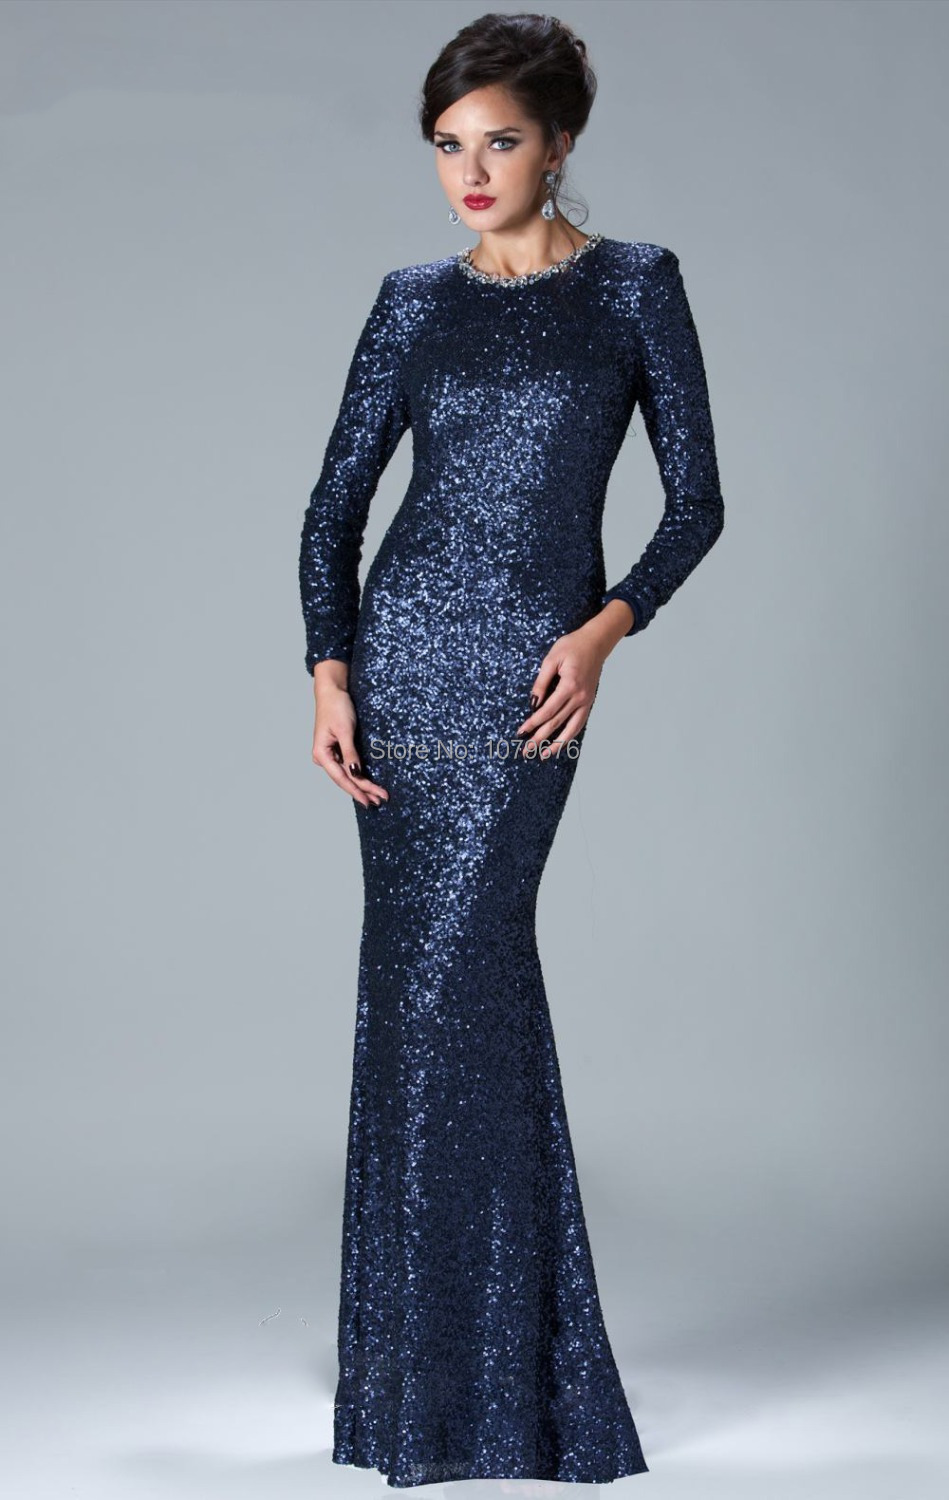 Free Shipping Vestido De Formatura Sequined Long Sleeve Navy Blue ...